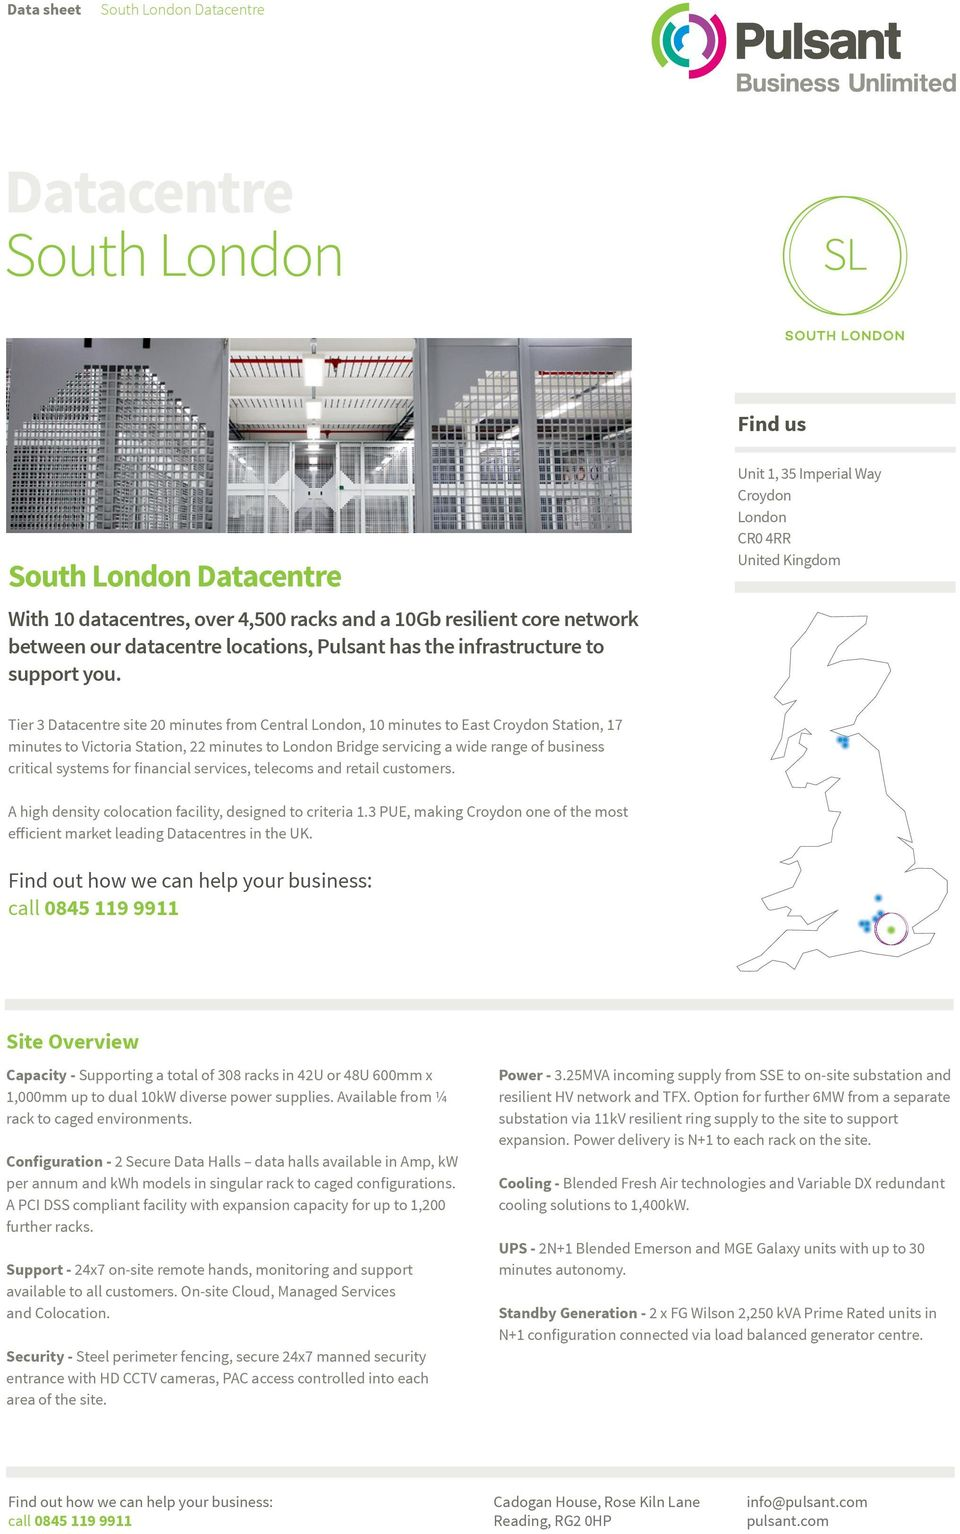 London Bridge servicing a wide range of business critical systems for financial services, telecoms and retail customers. A high density colocation facility, designed to criteria 1.